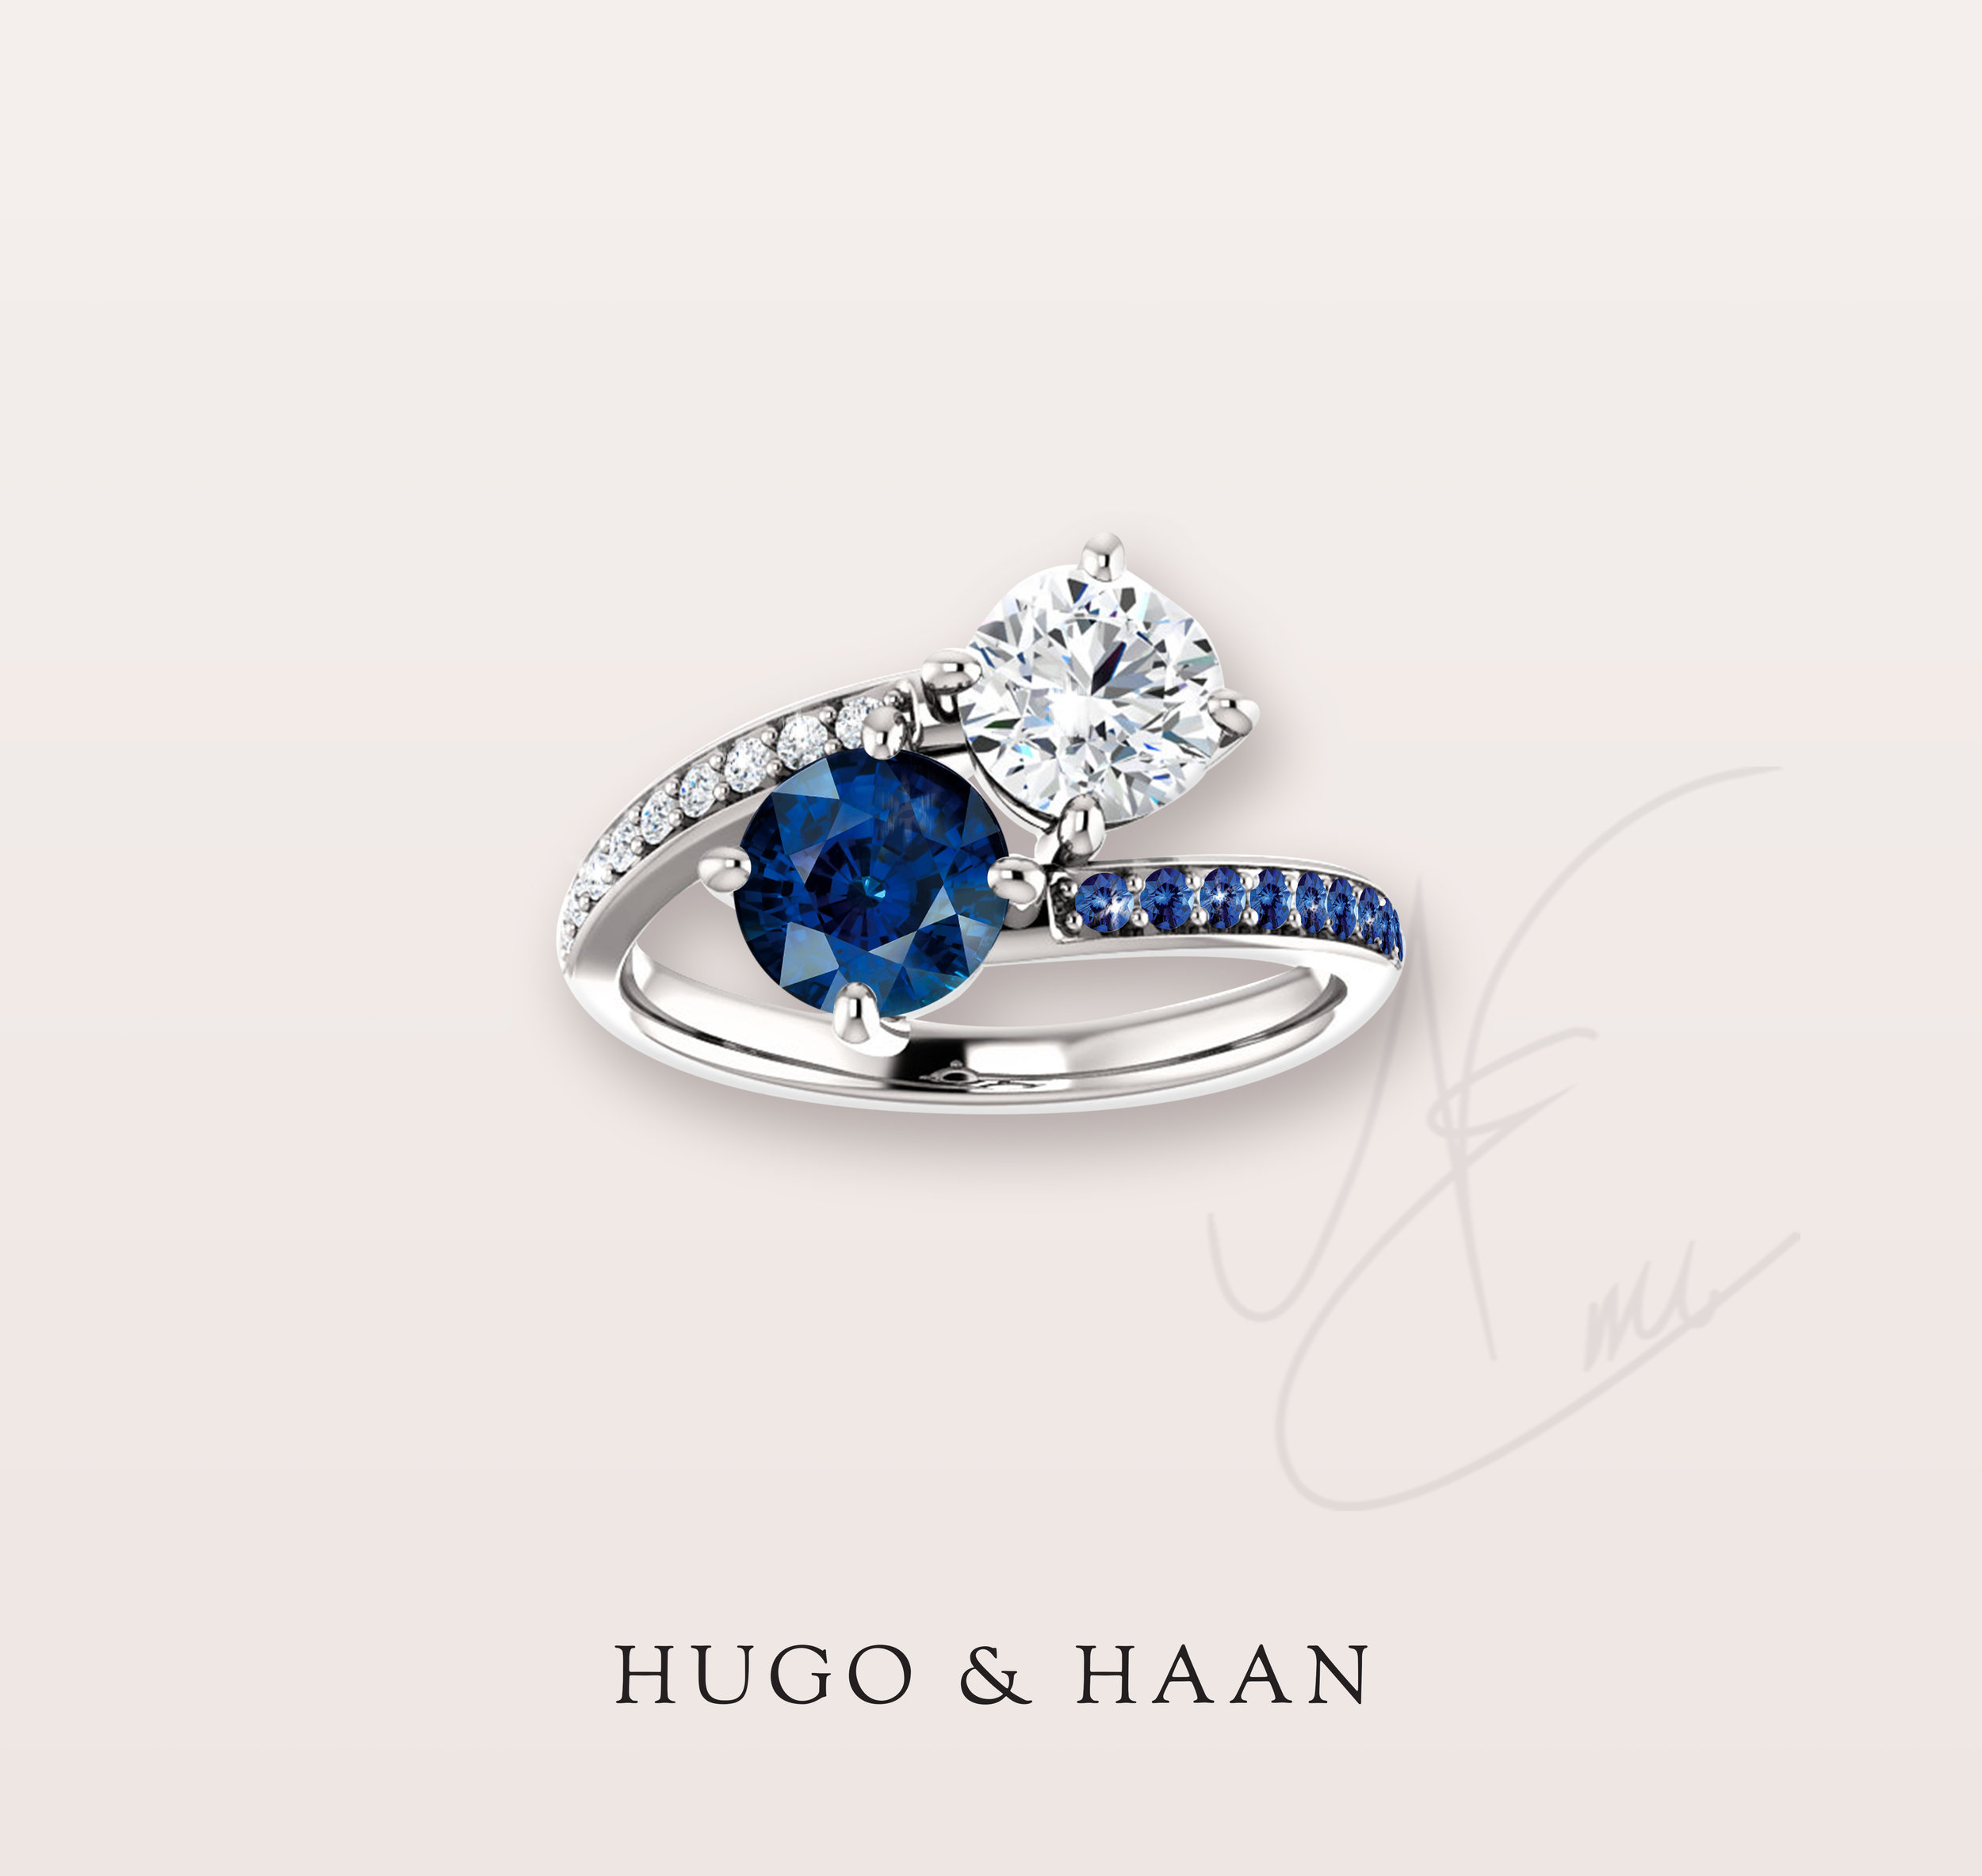 THE ROYAL - Still a classic but with a twist of the royal blue of the sapphires